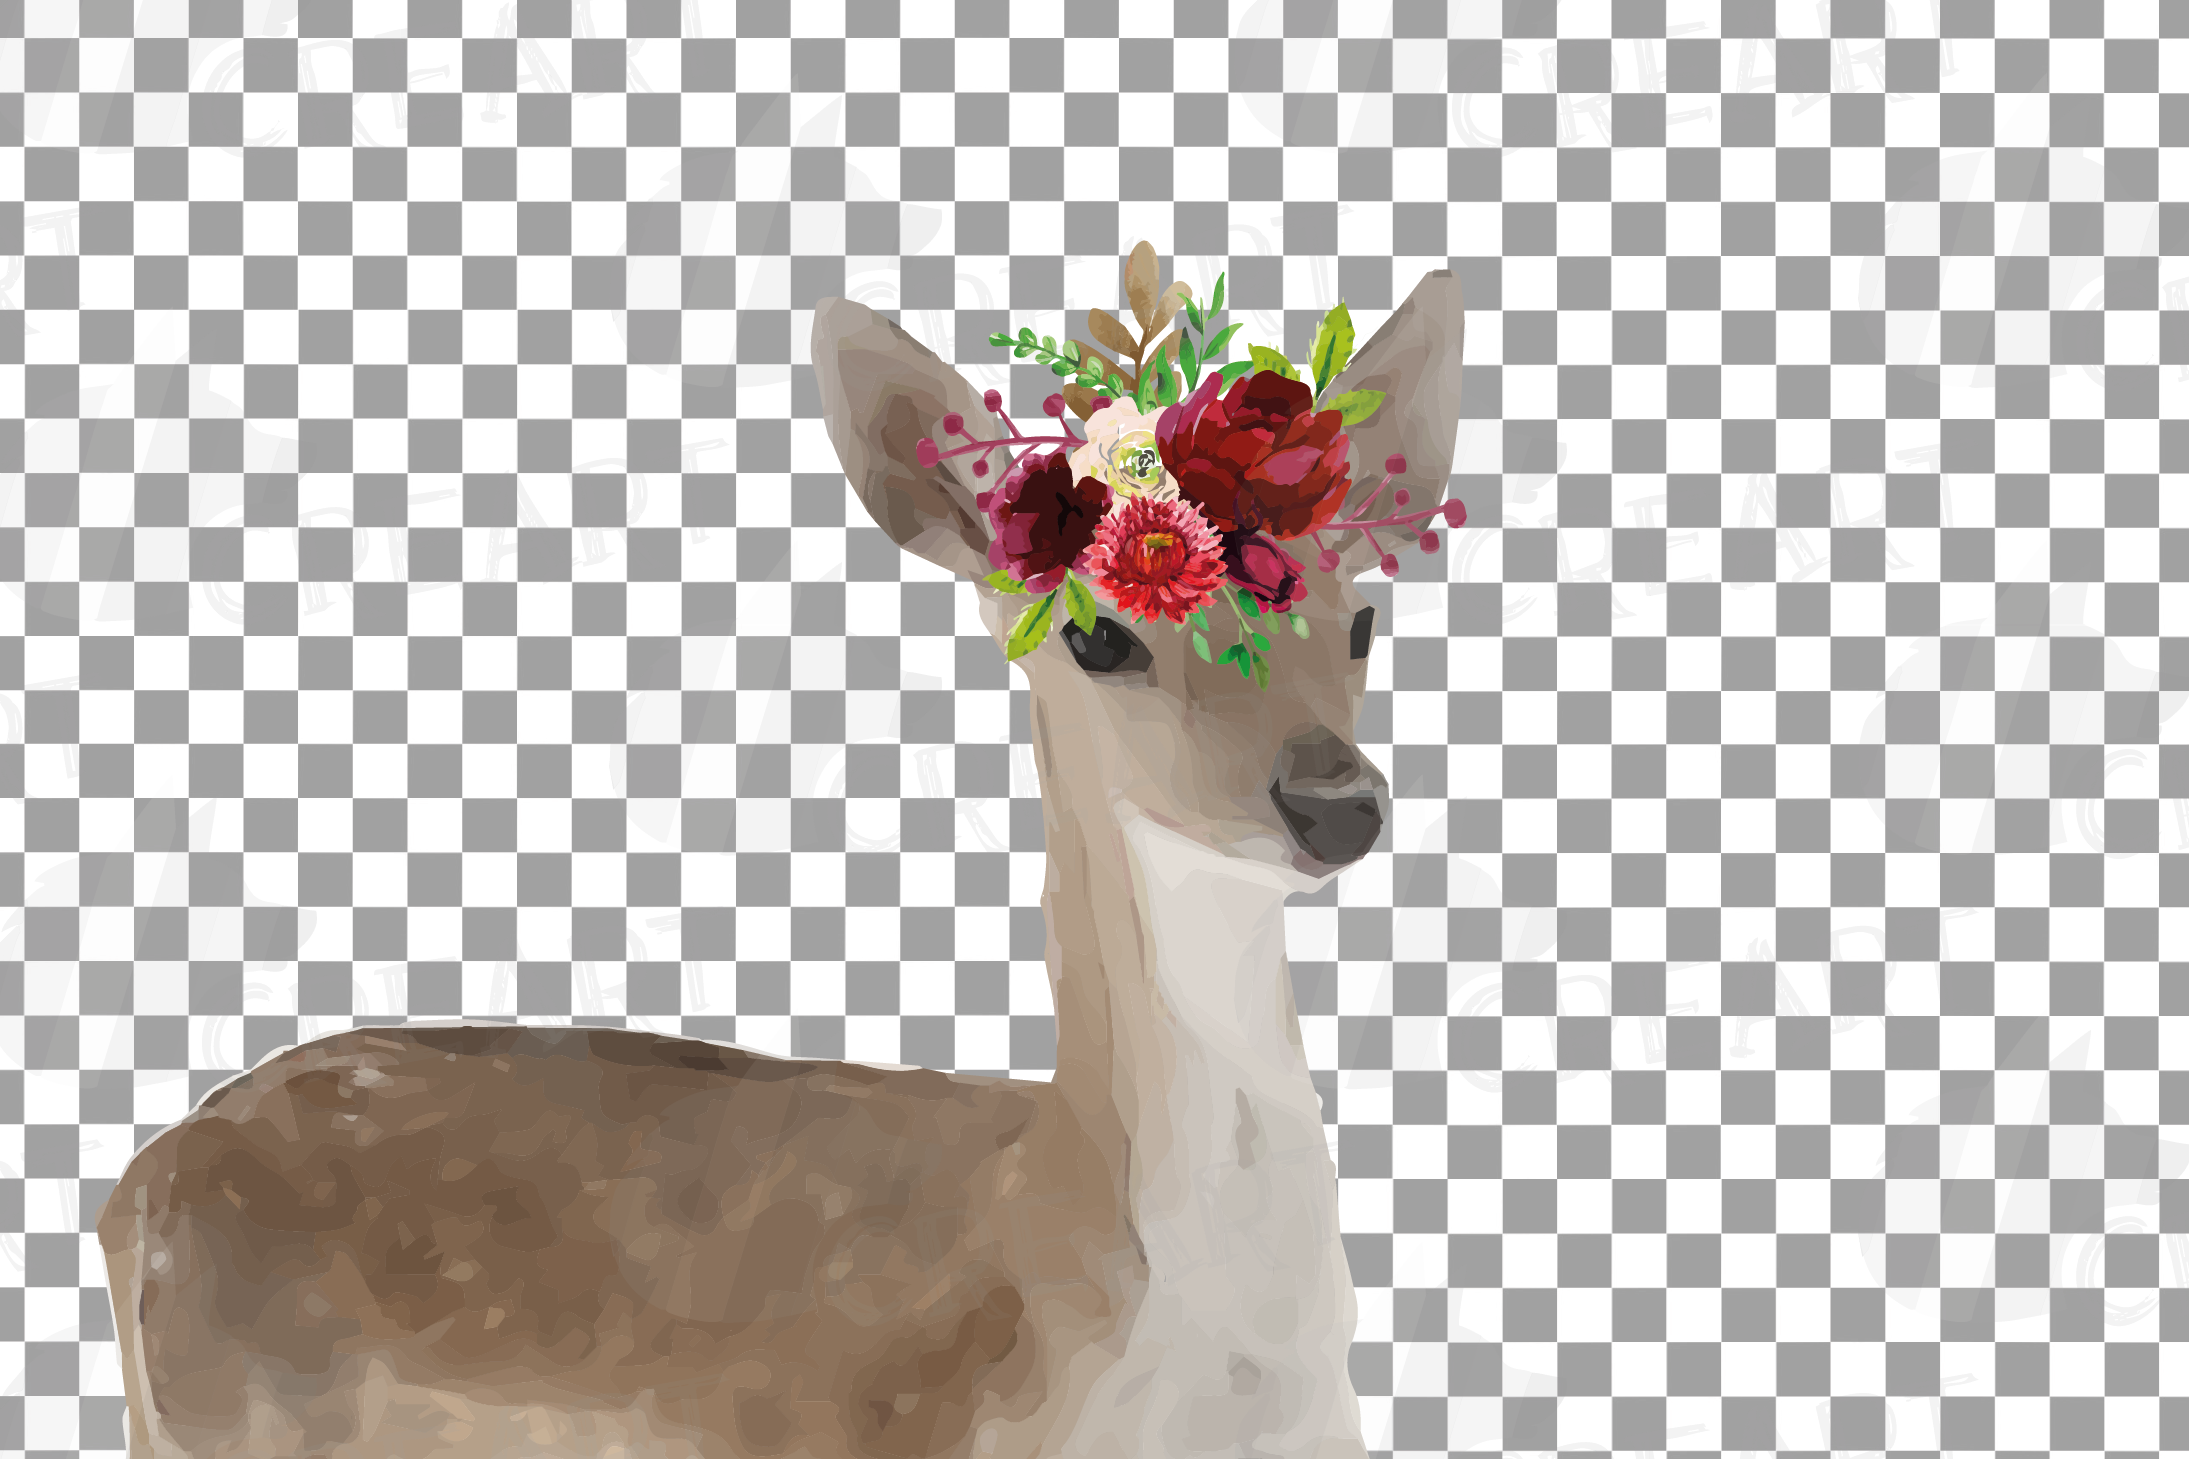 Deer couple with floral burgundy crown match shirt clip art example image 5